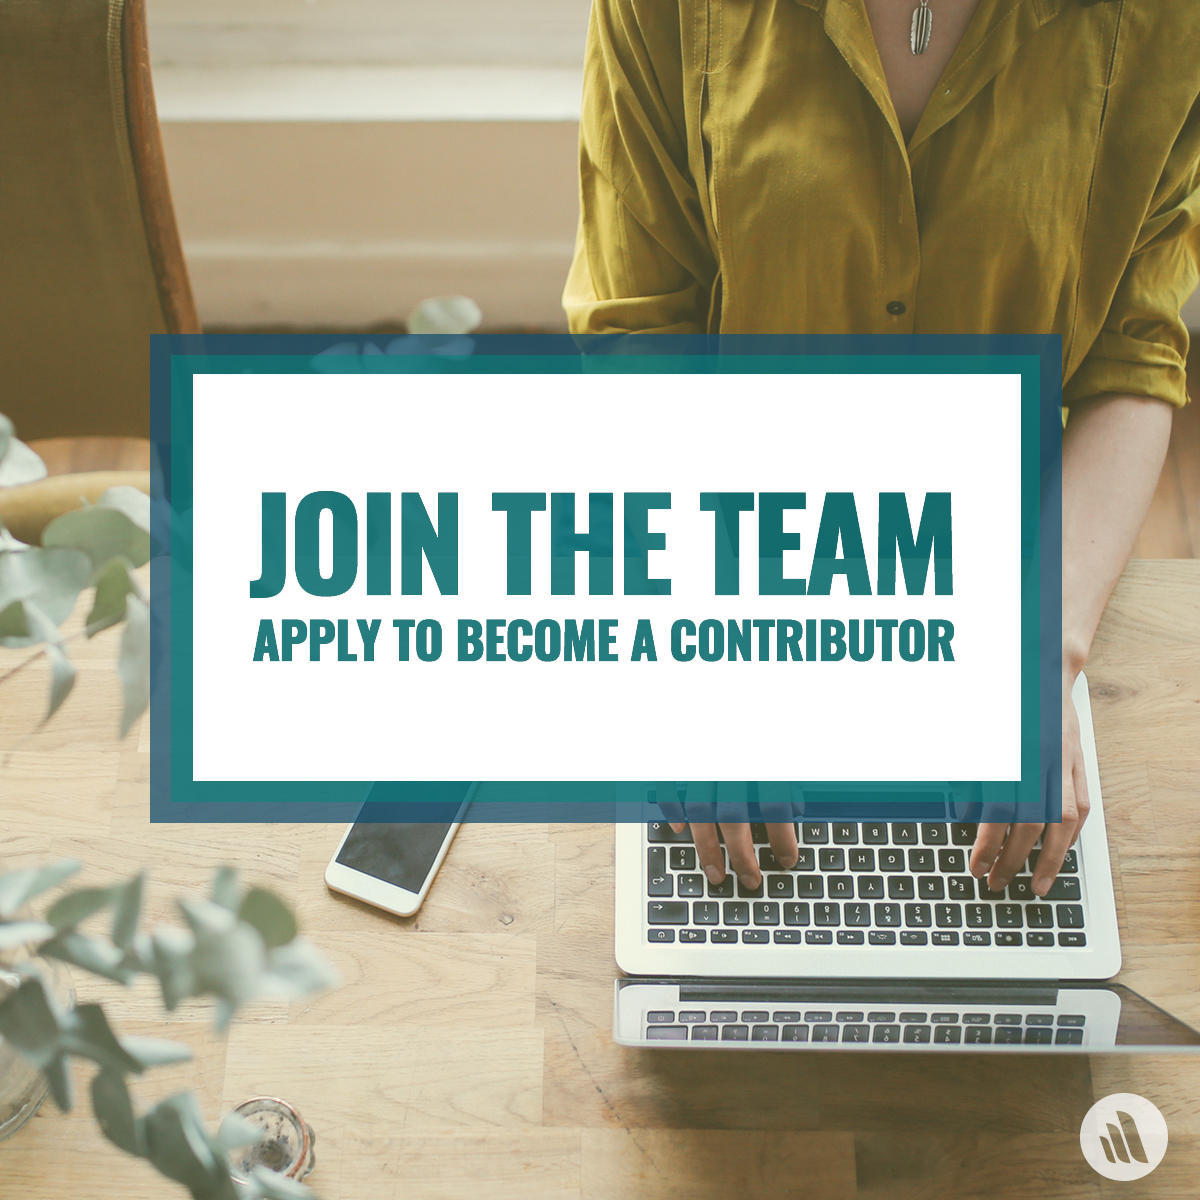 Join the team - Apply to become a contributor